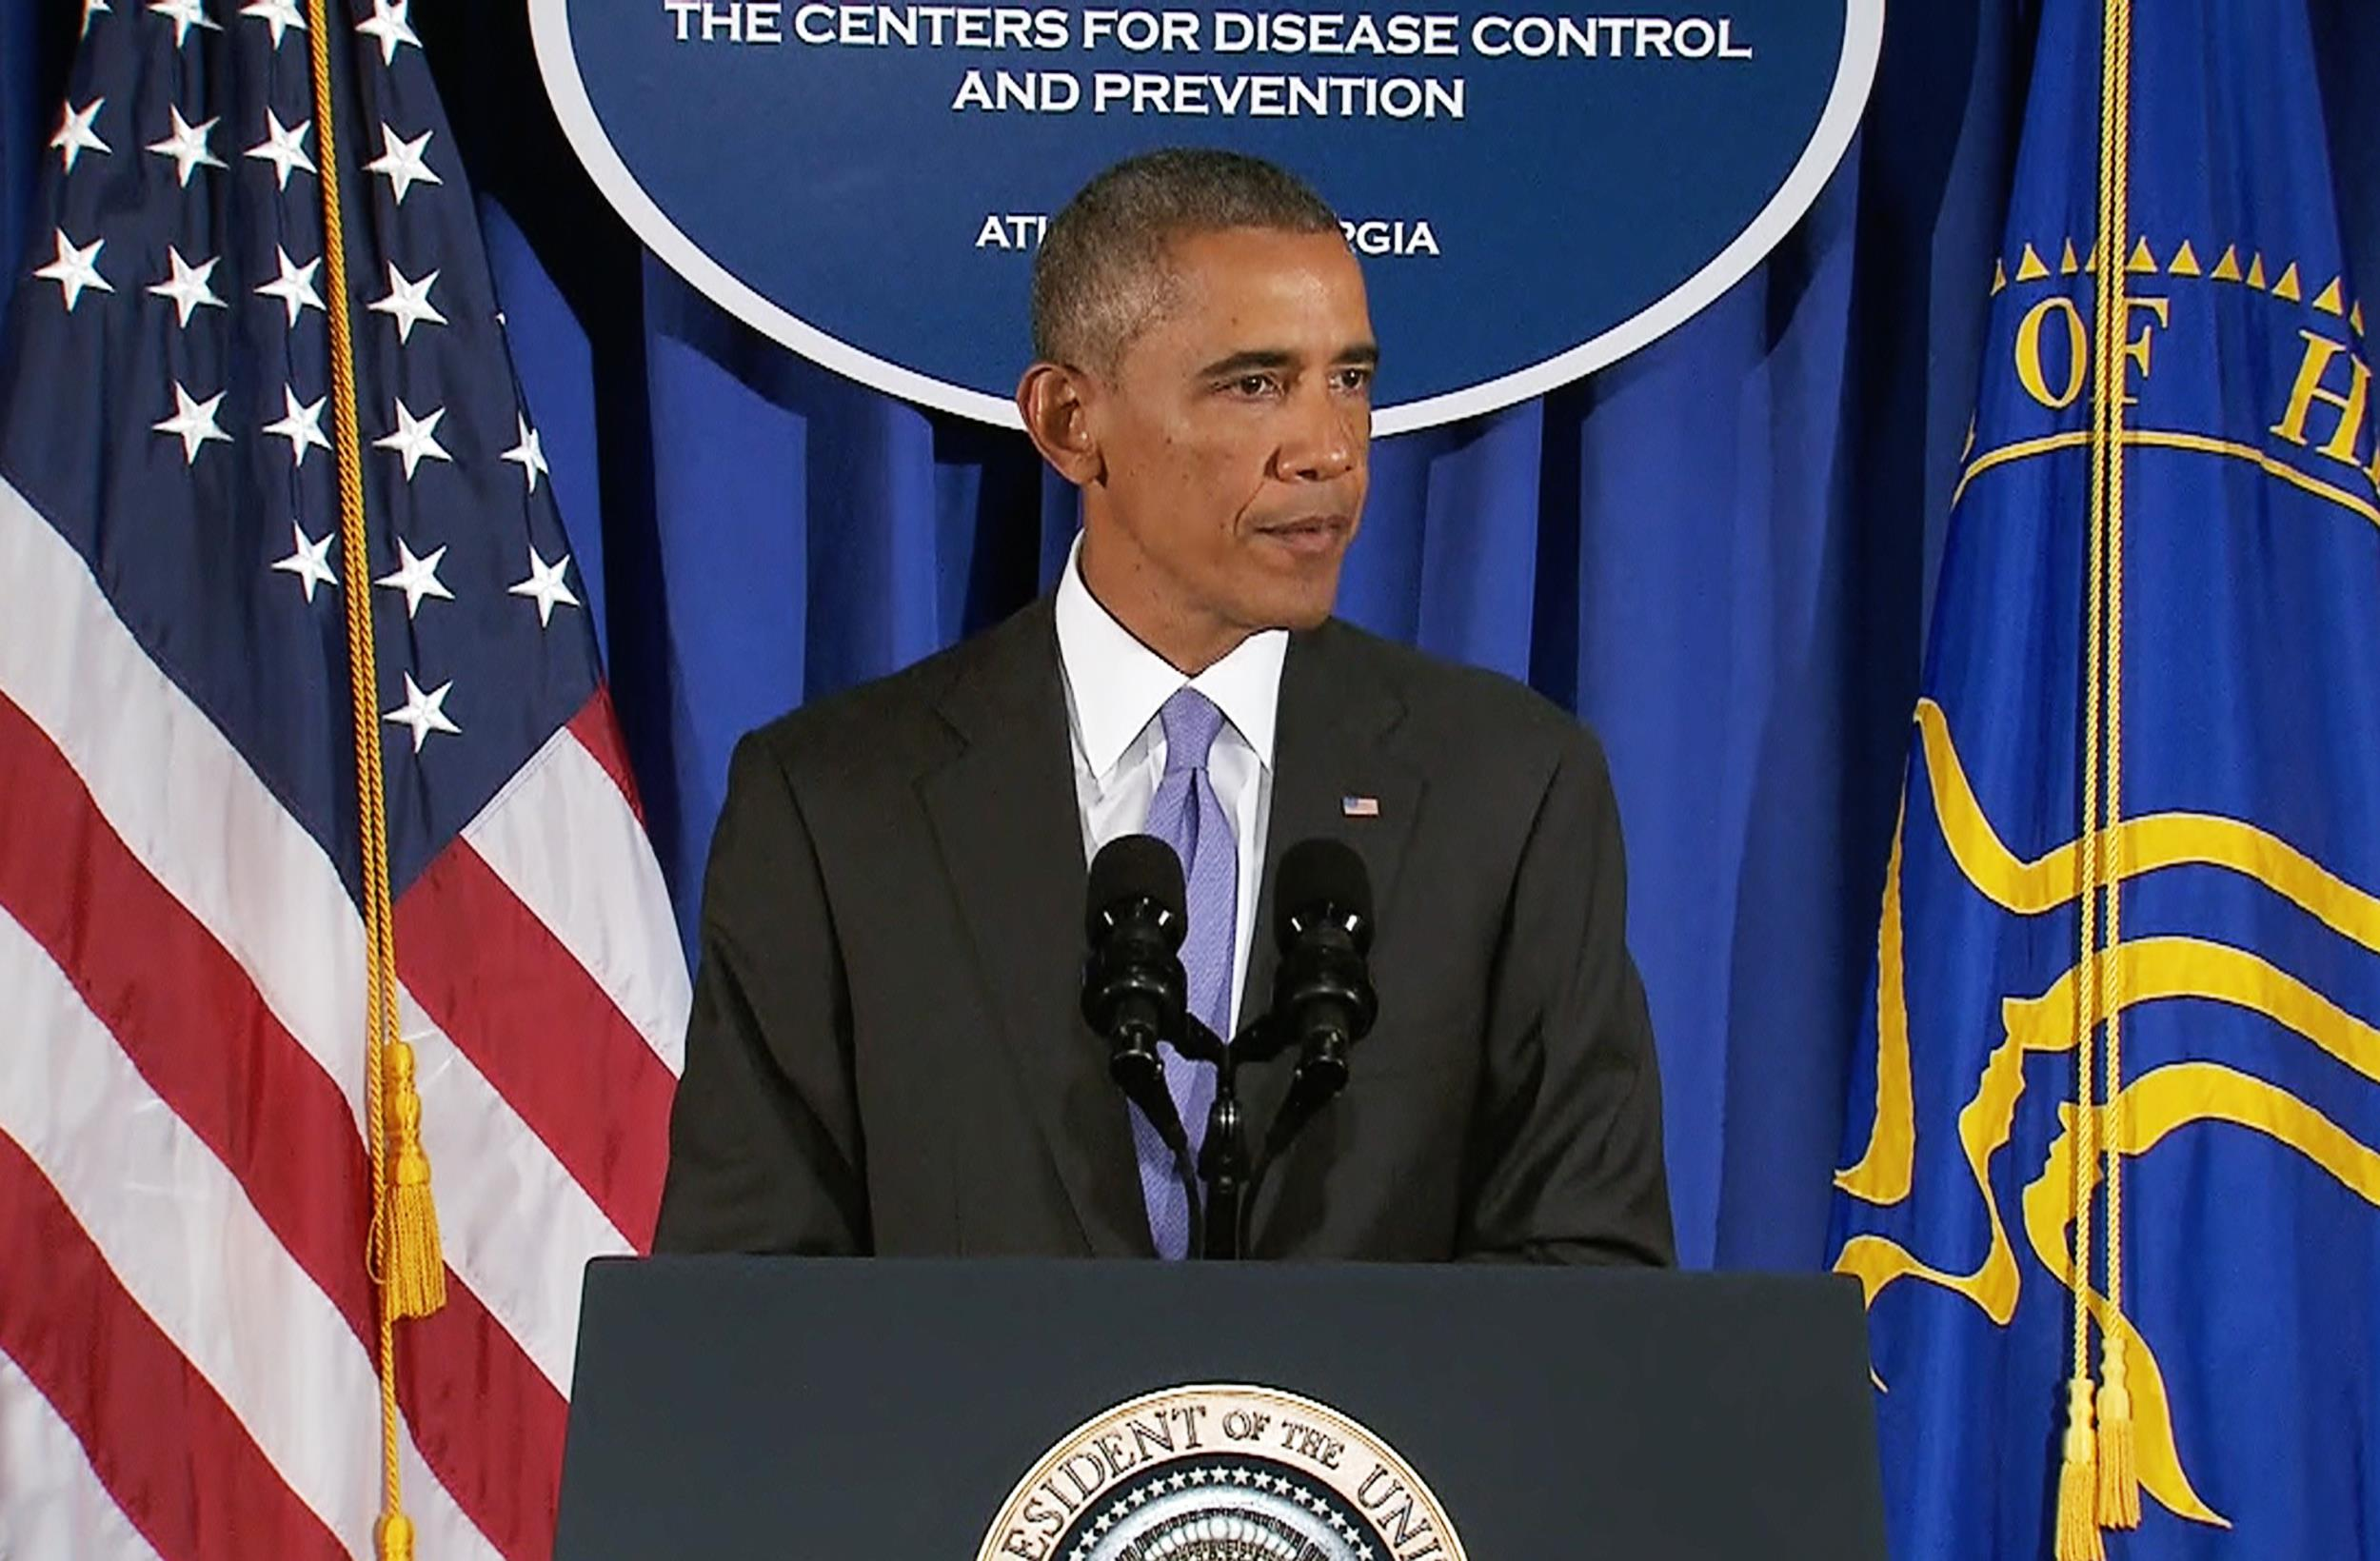 Obama announces 'Operation United Assistance' to confront Ebola